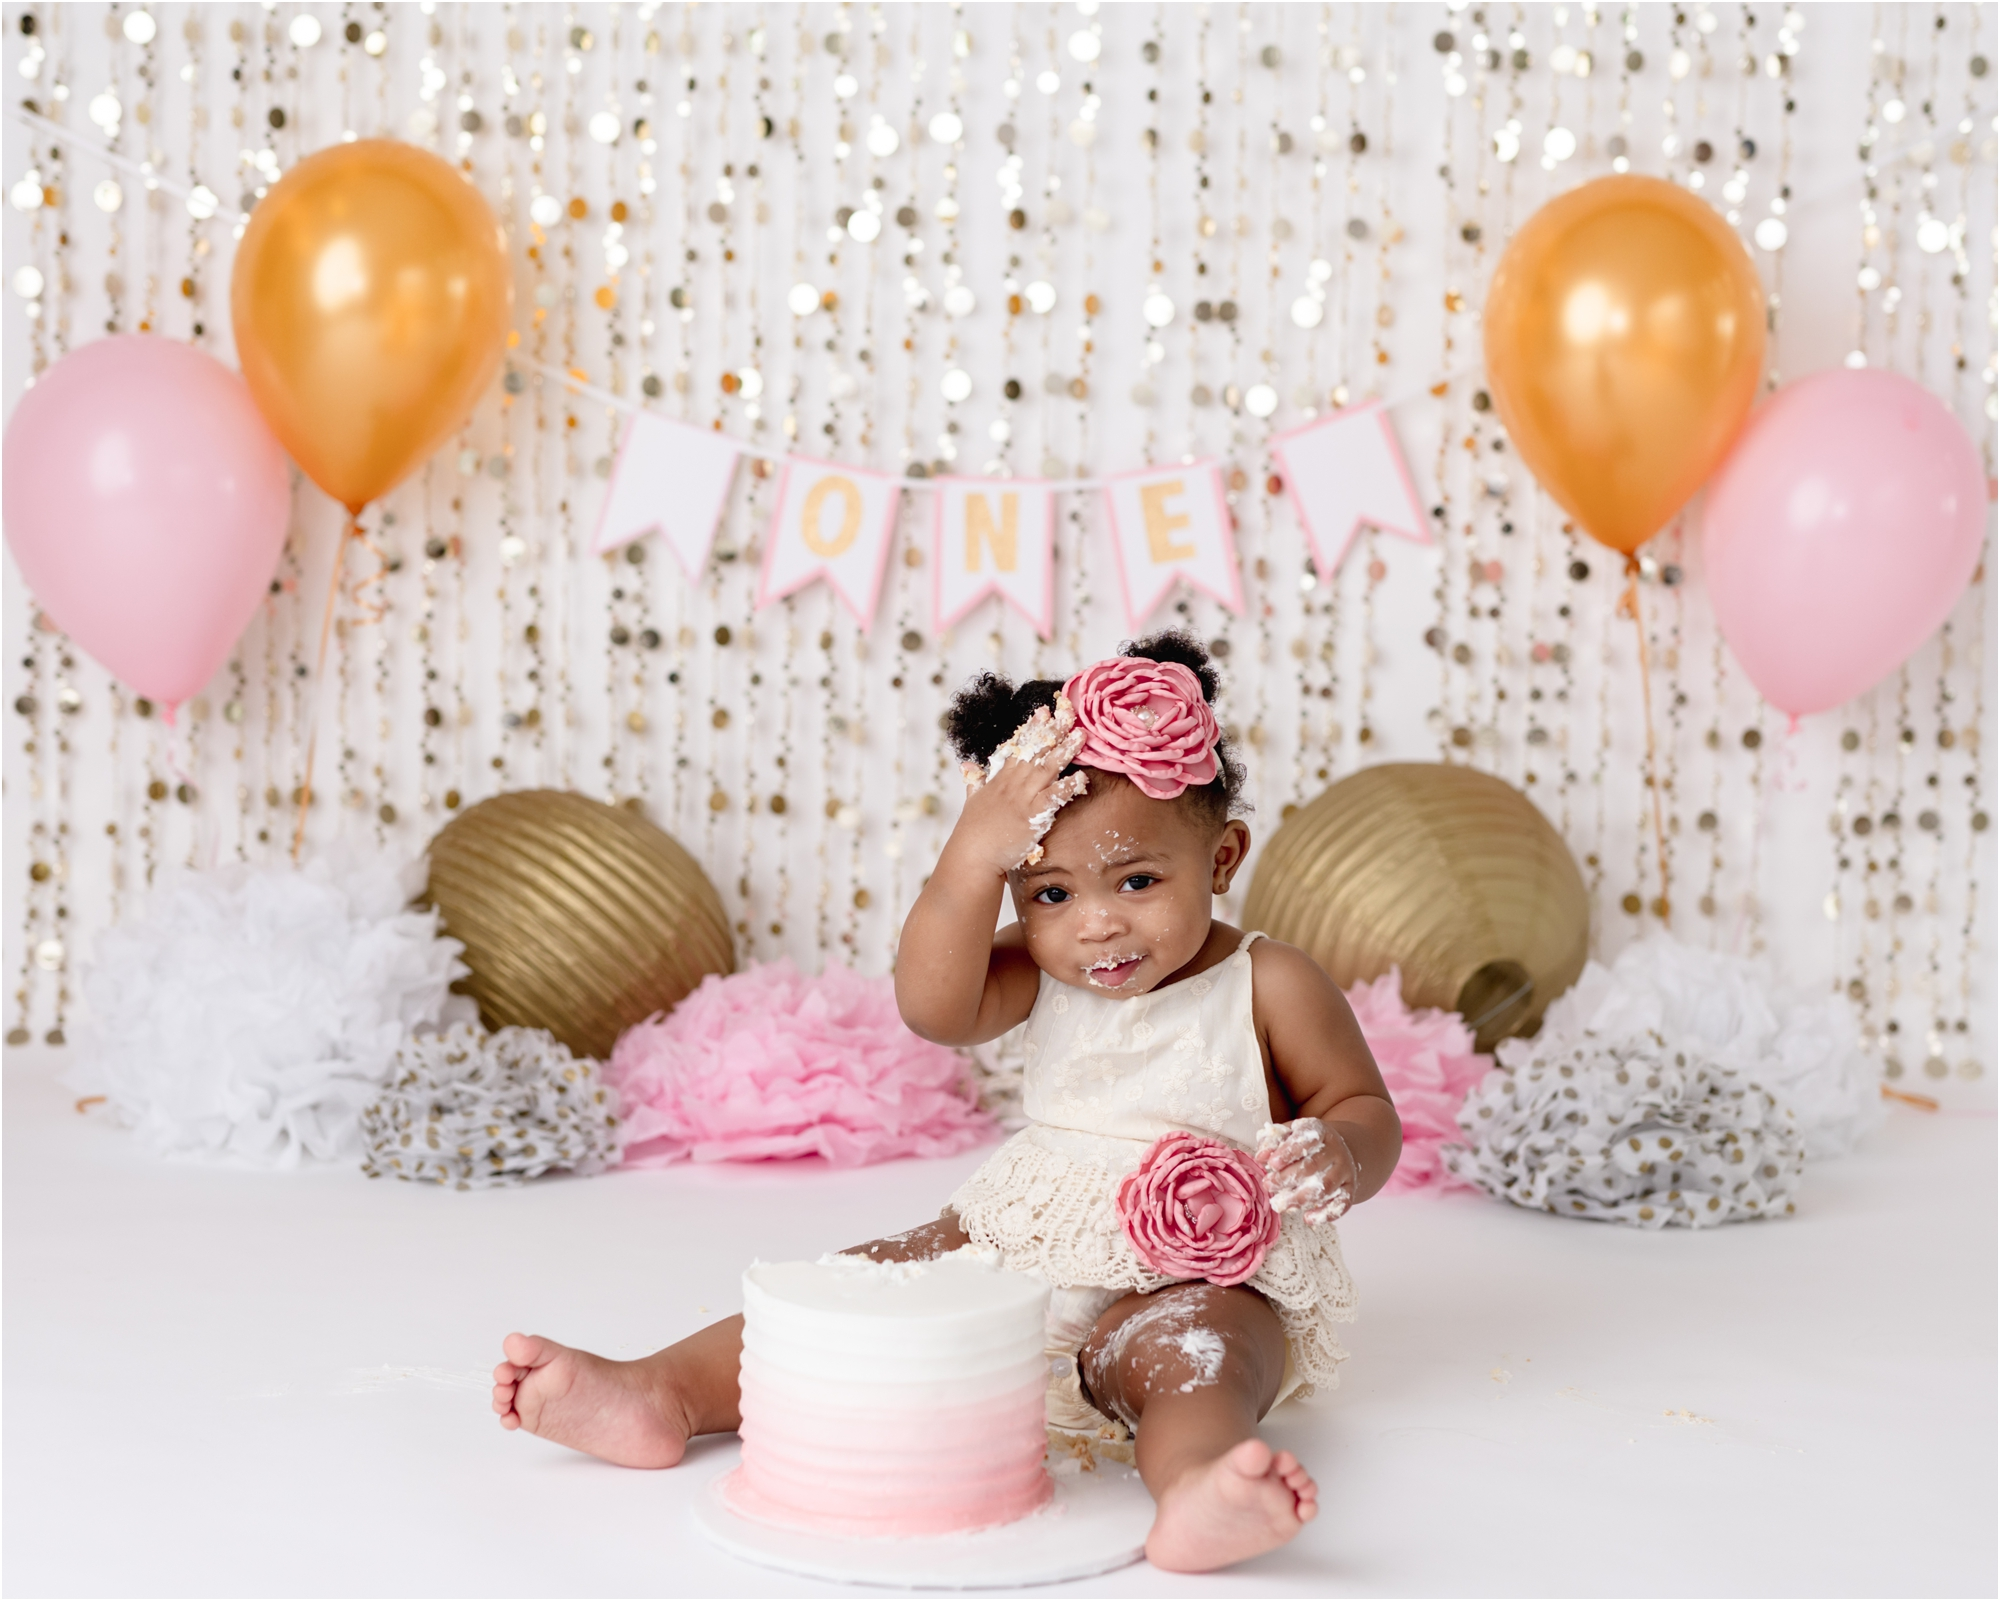 Little girl covered in frosting during cake smash photoshoot in Houston with pink and gold decor. Photo by Lifetime of Clicks Photography.